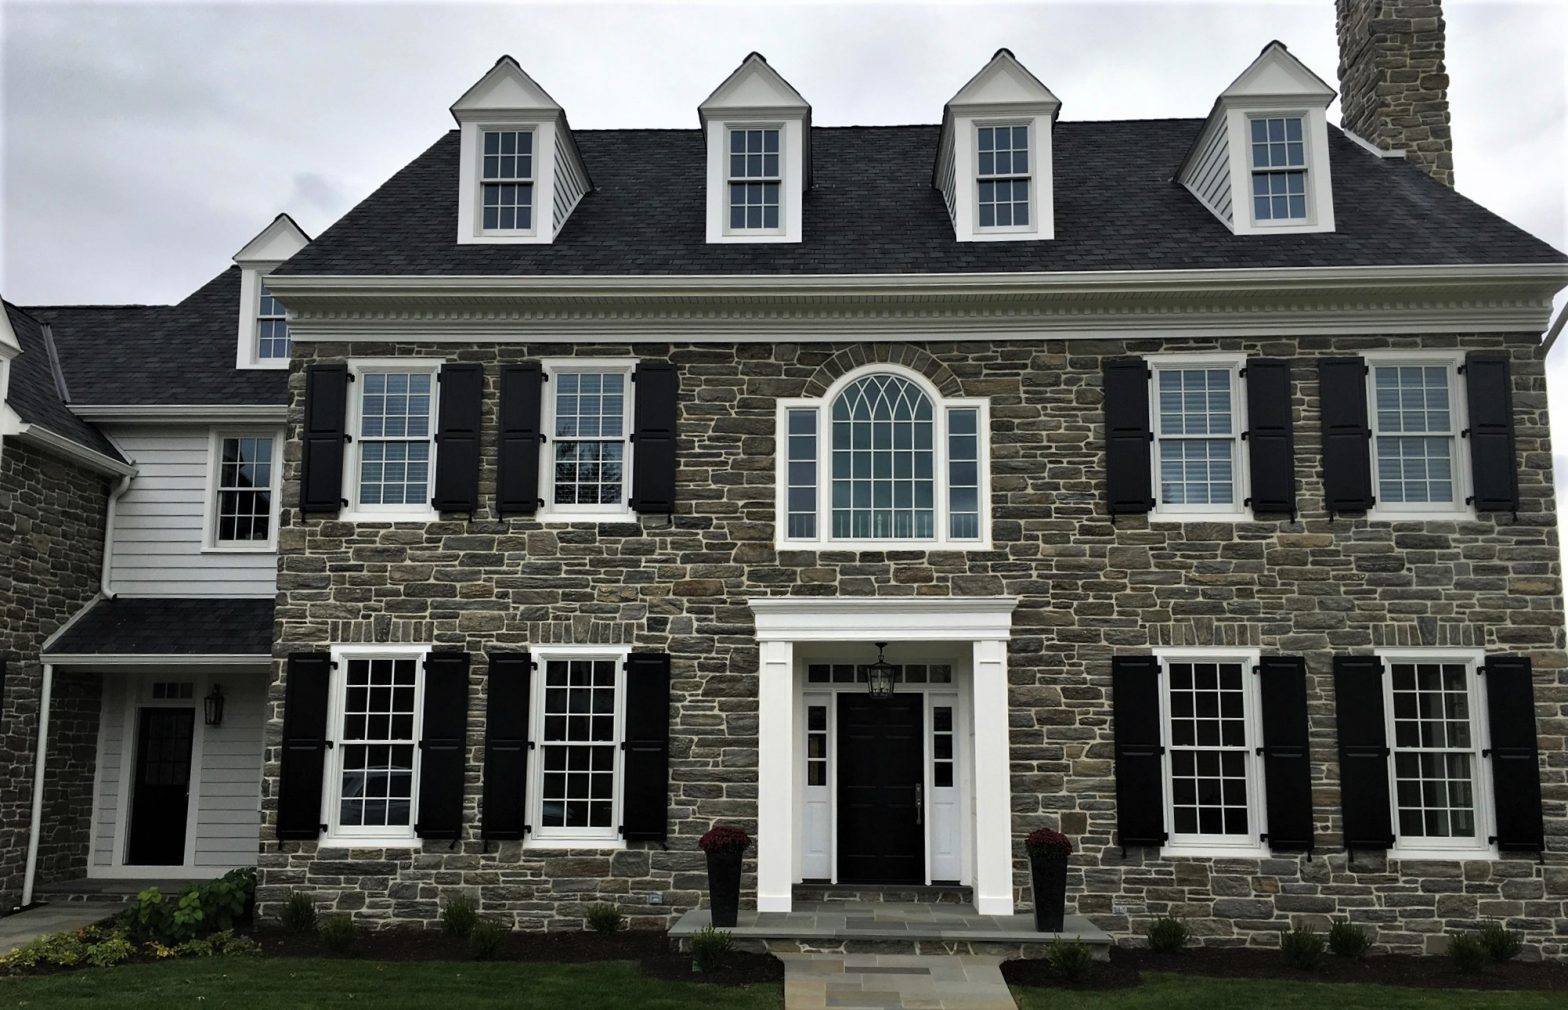 Exterior of a stone home with new windows